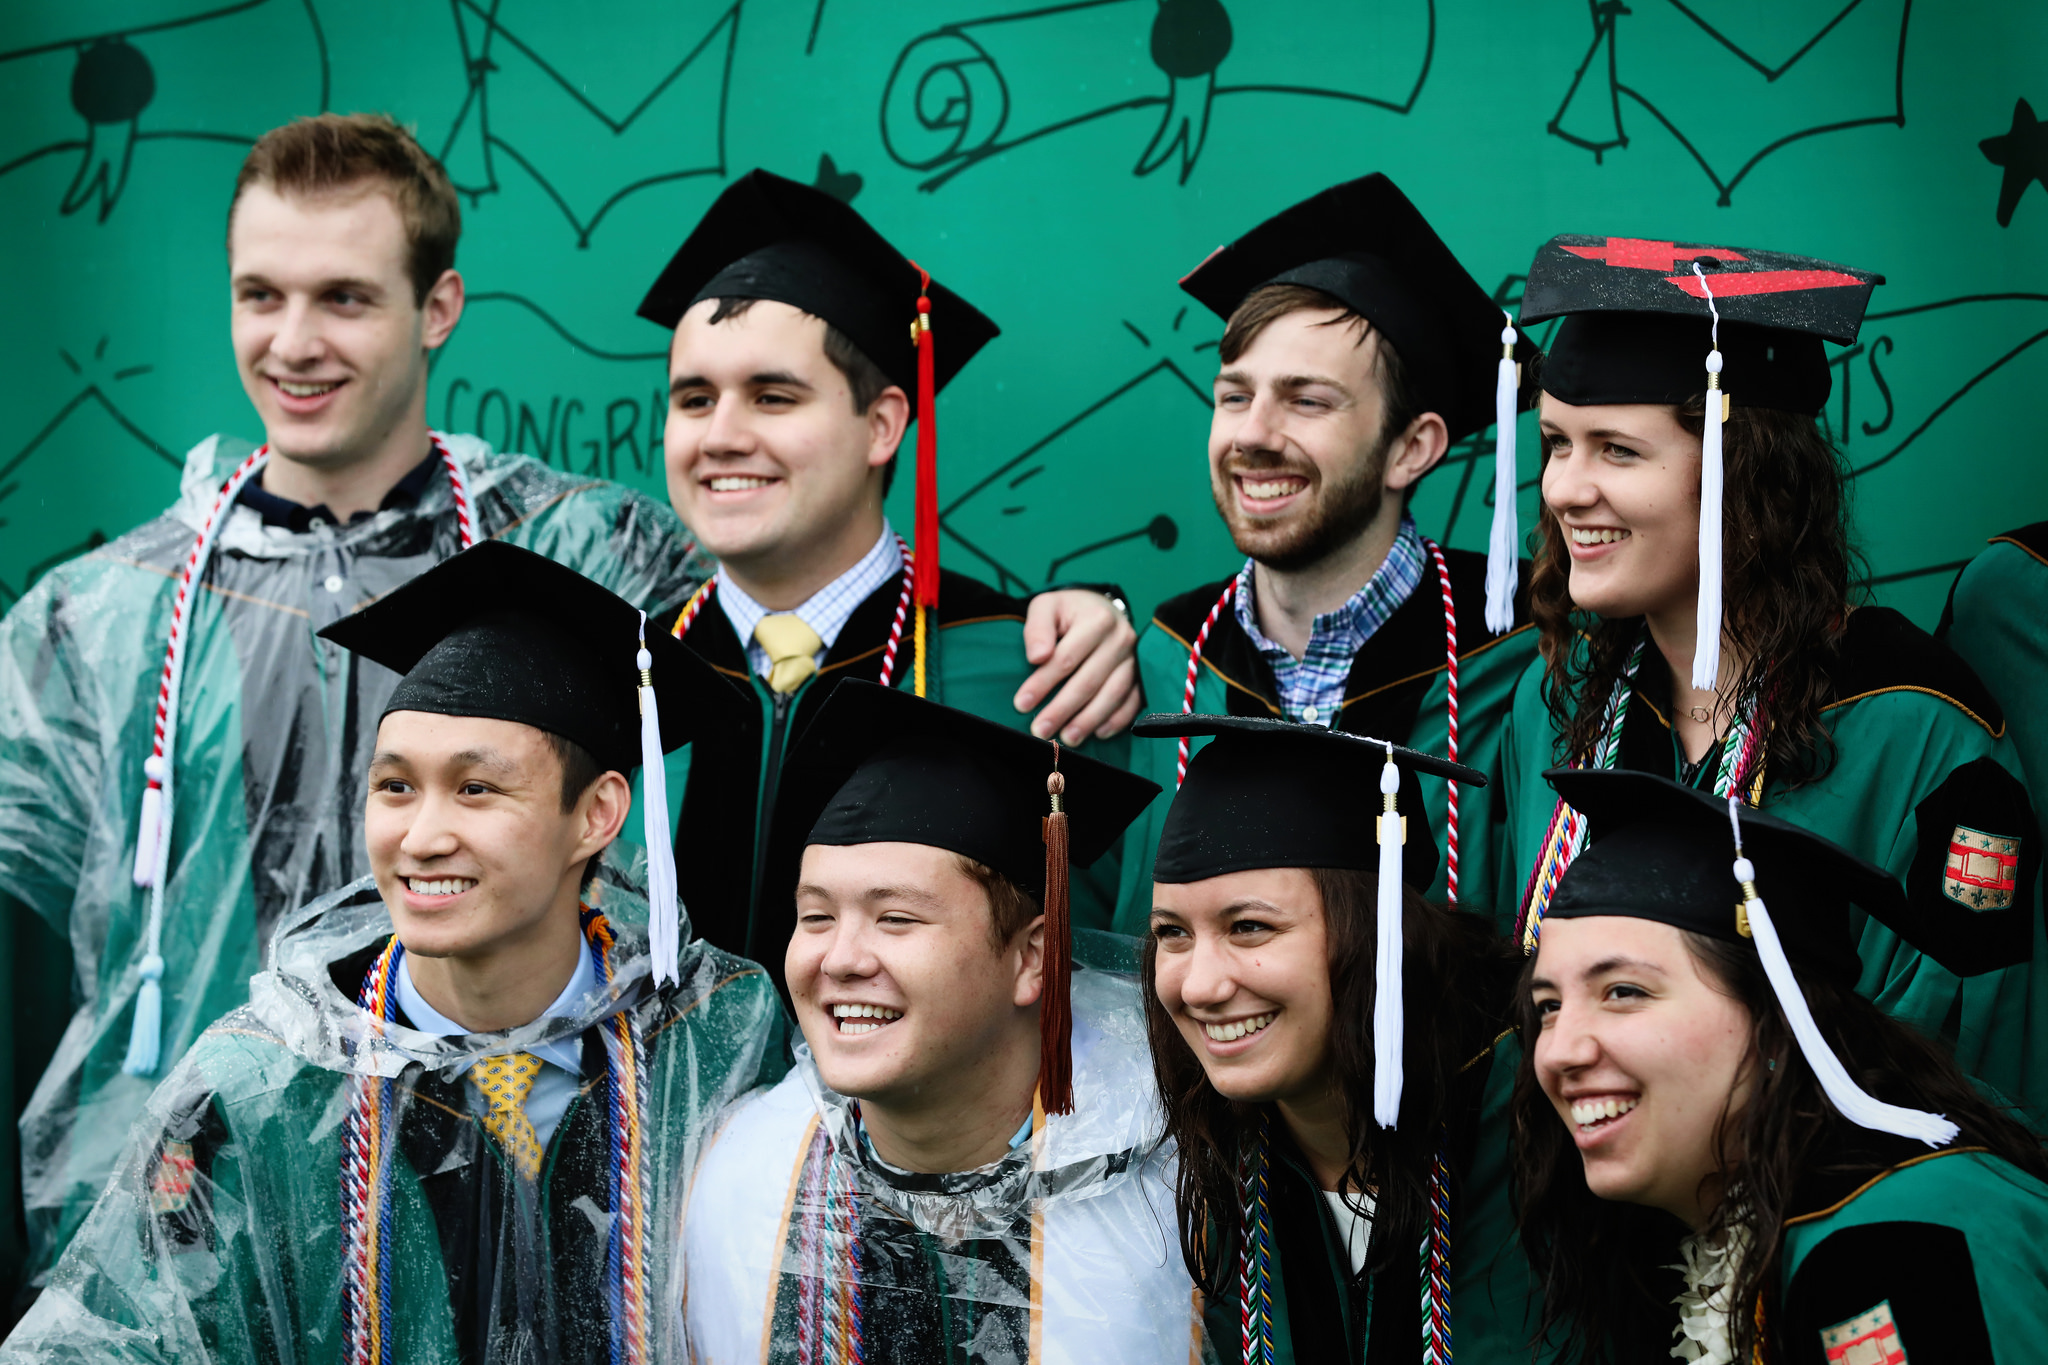 A group of WashU students in cap and gown pose for photos in front of a green illustrated backdrop